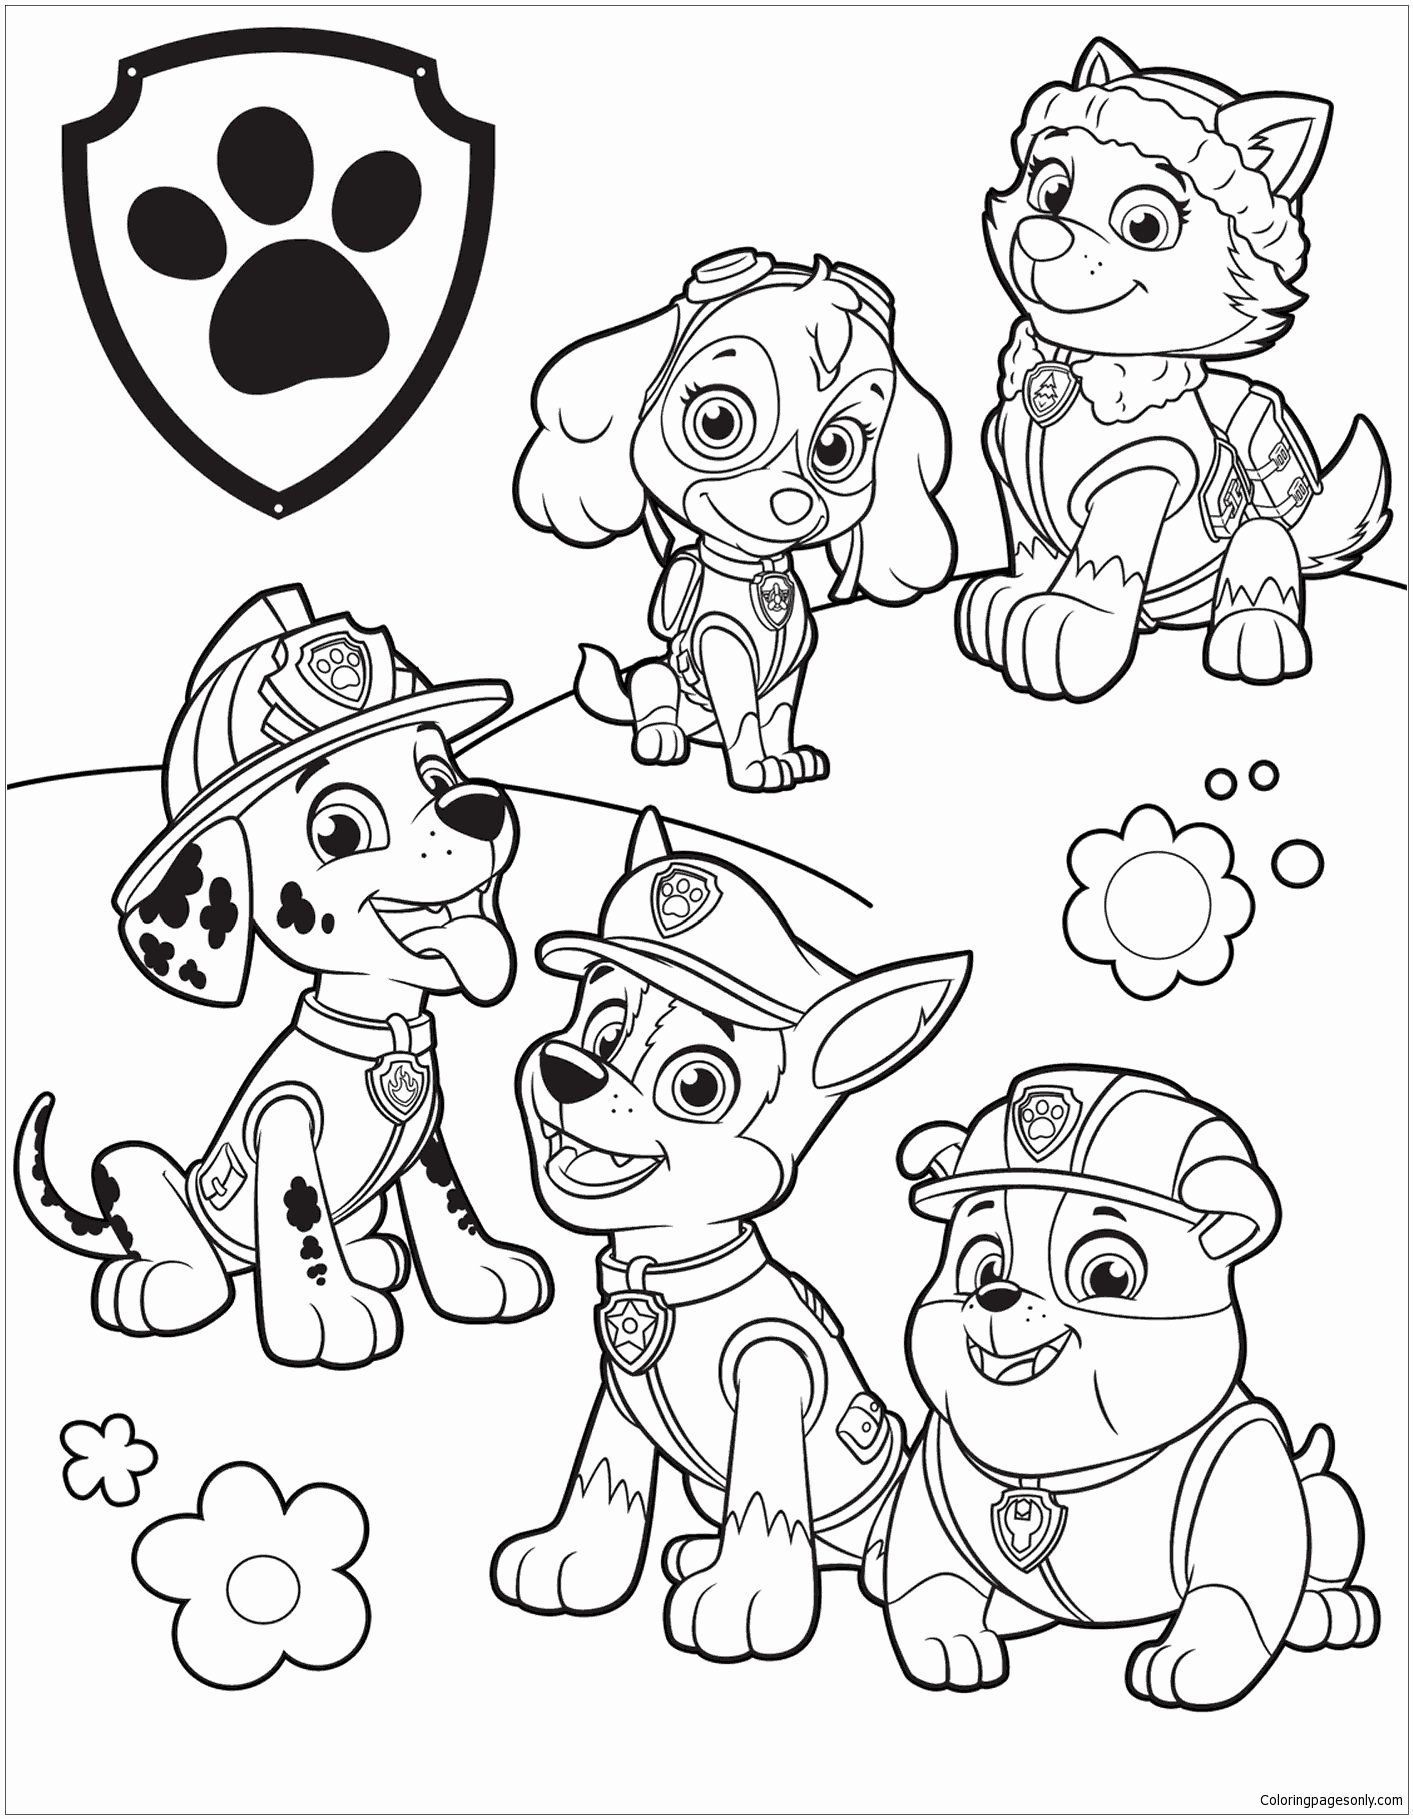 Printable Coloring Pages Paw Patrol Inspirational Paw Patrol 39 Coloring Page Paw Patrol Co In 2020 Paw Patrol Coloring Pages Paw Patrol Coloring Disney Coloring Pages